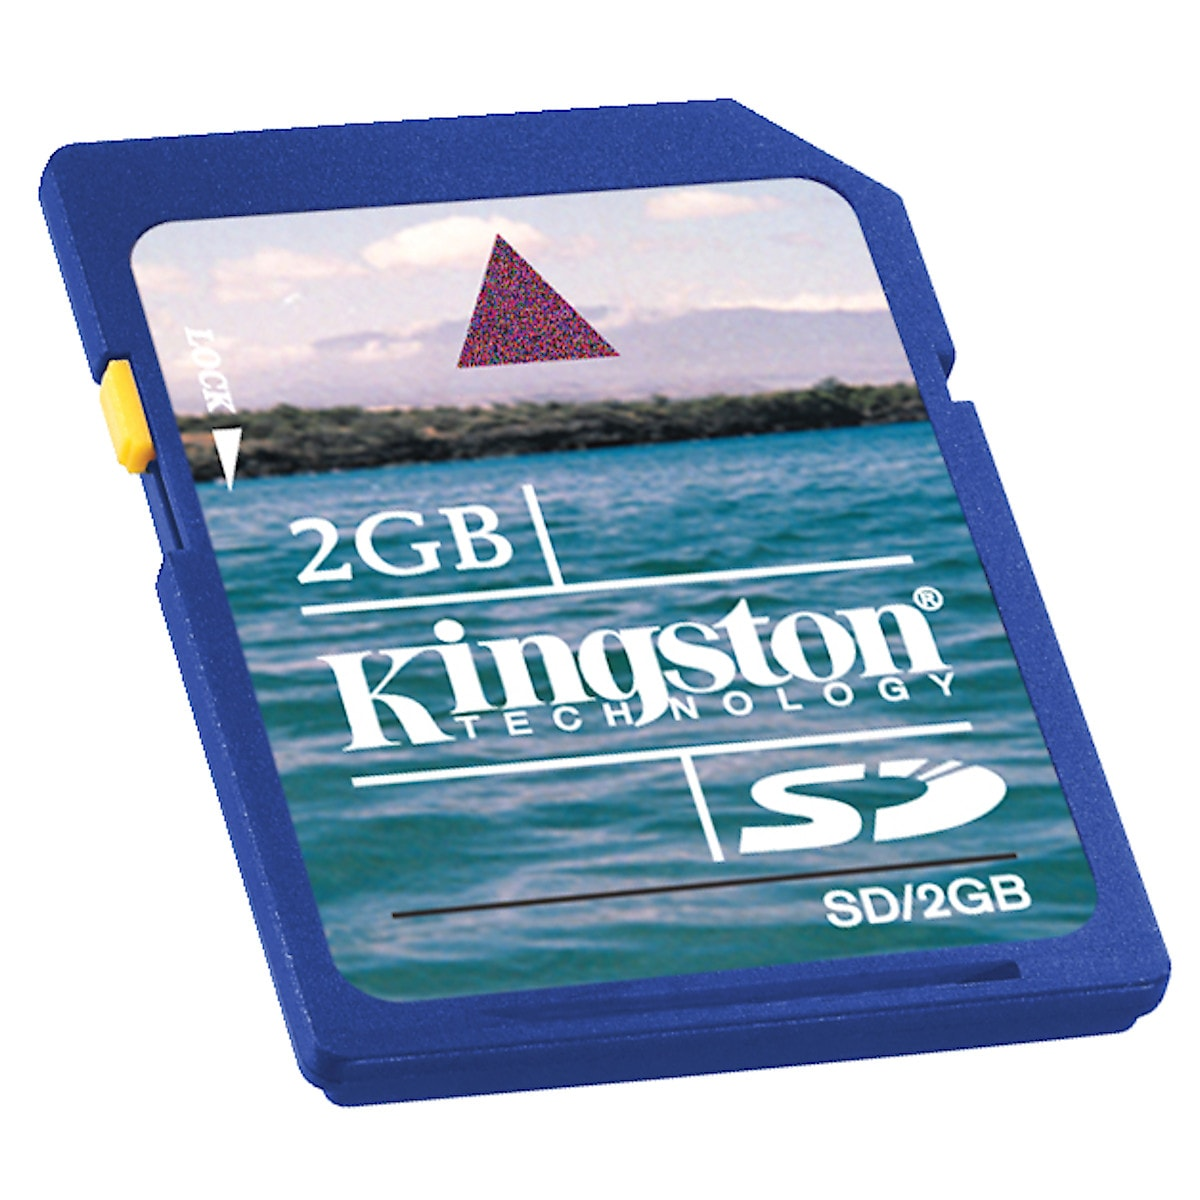 Kingston SD 2 GB minnekort